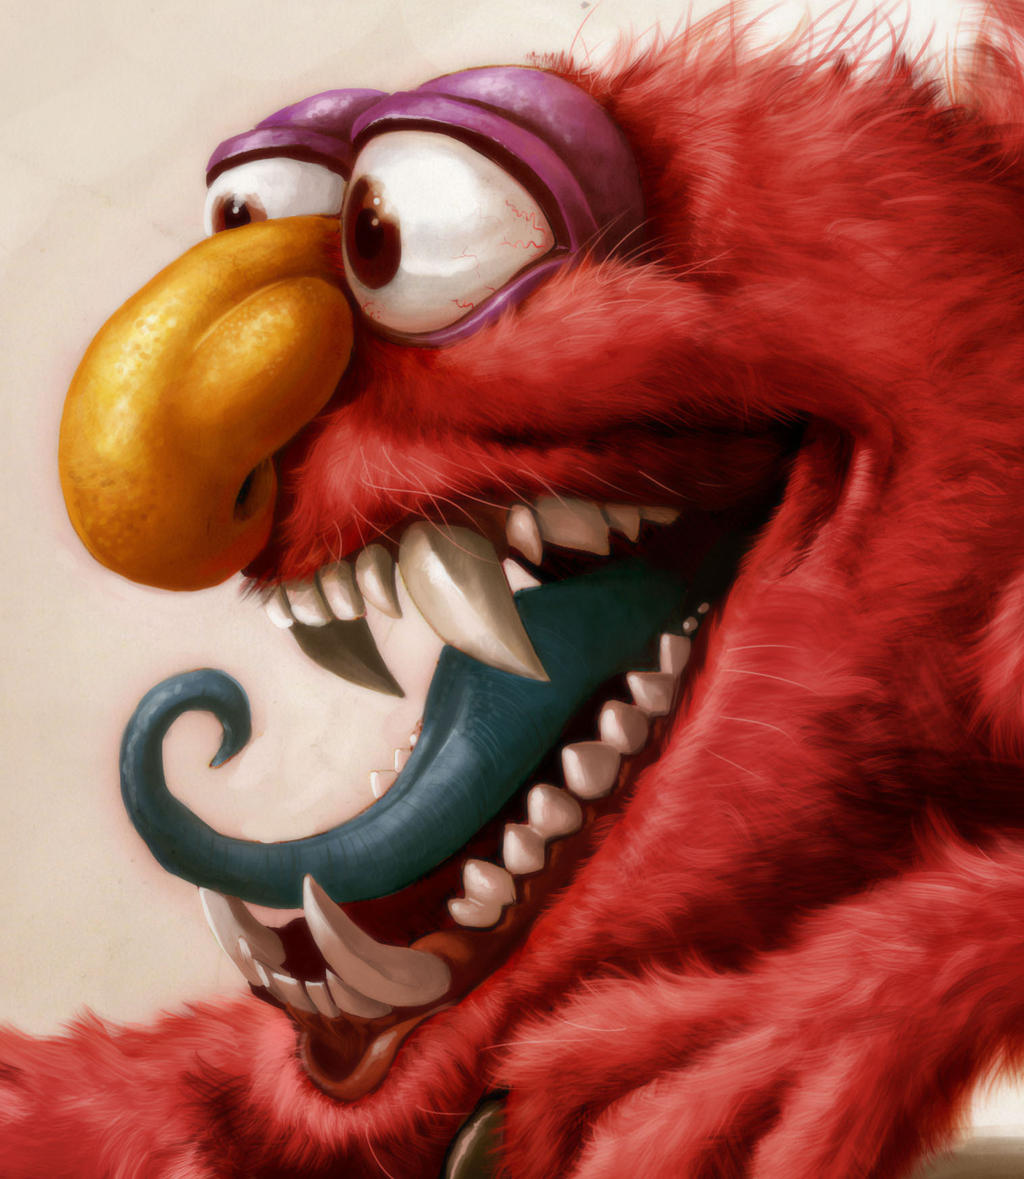 Elmo is a Monster right? FACE by heckthor on DeviantArt